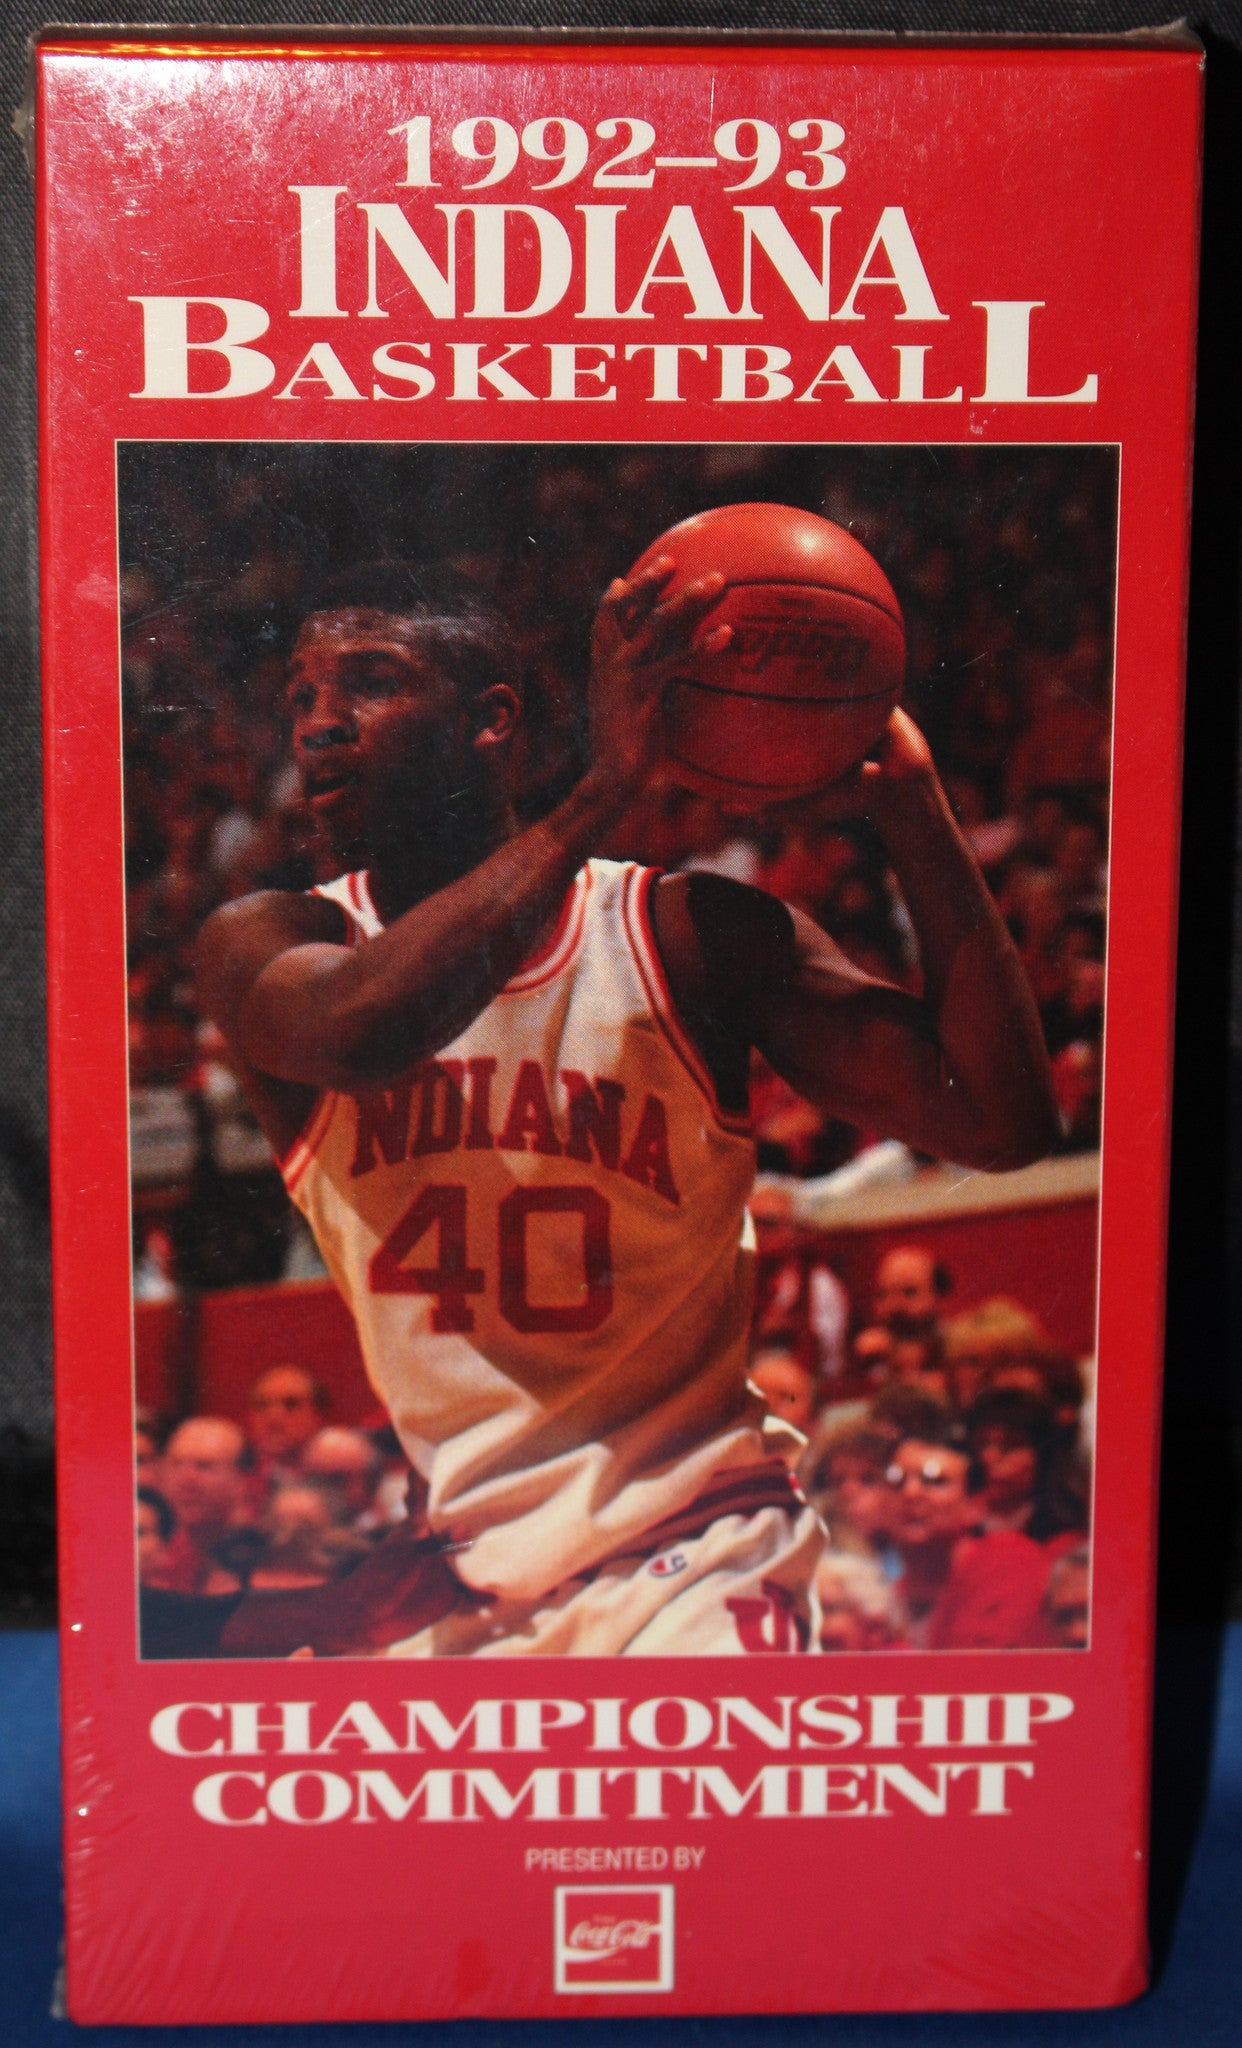 1992-93 Indiana Basketball Championship Committment VHS Video - Vintage Indy Sports